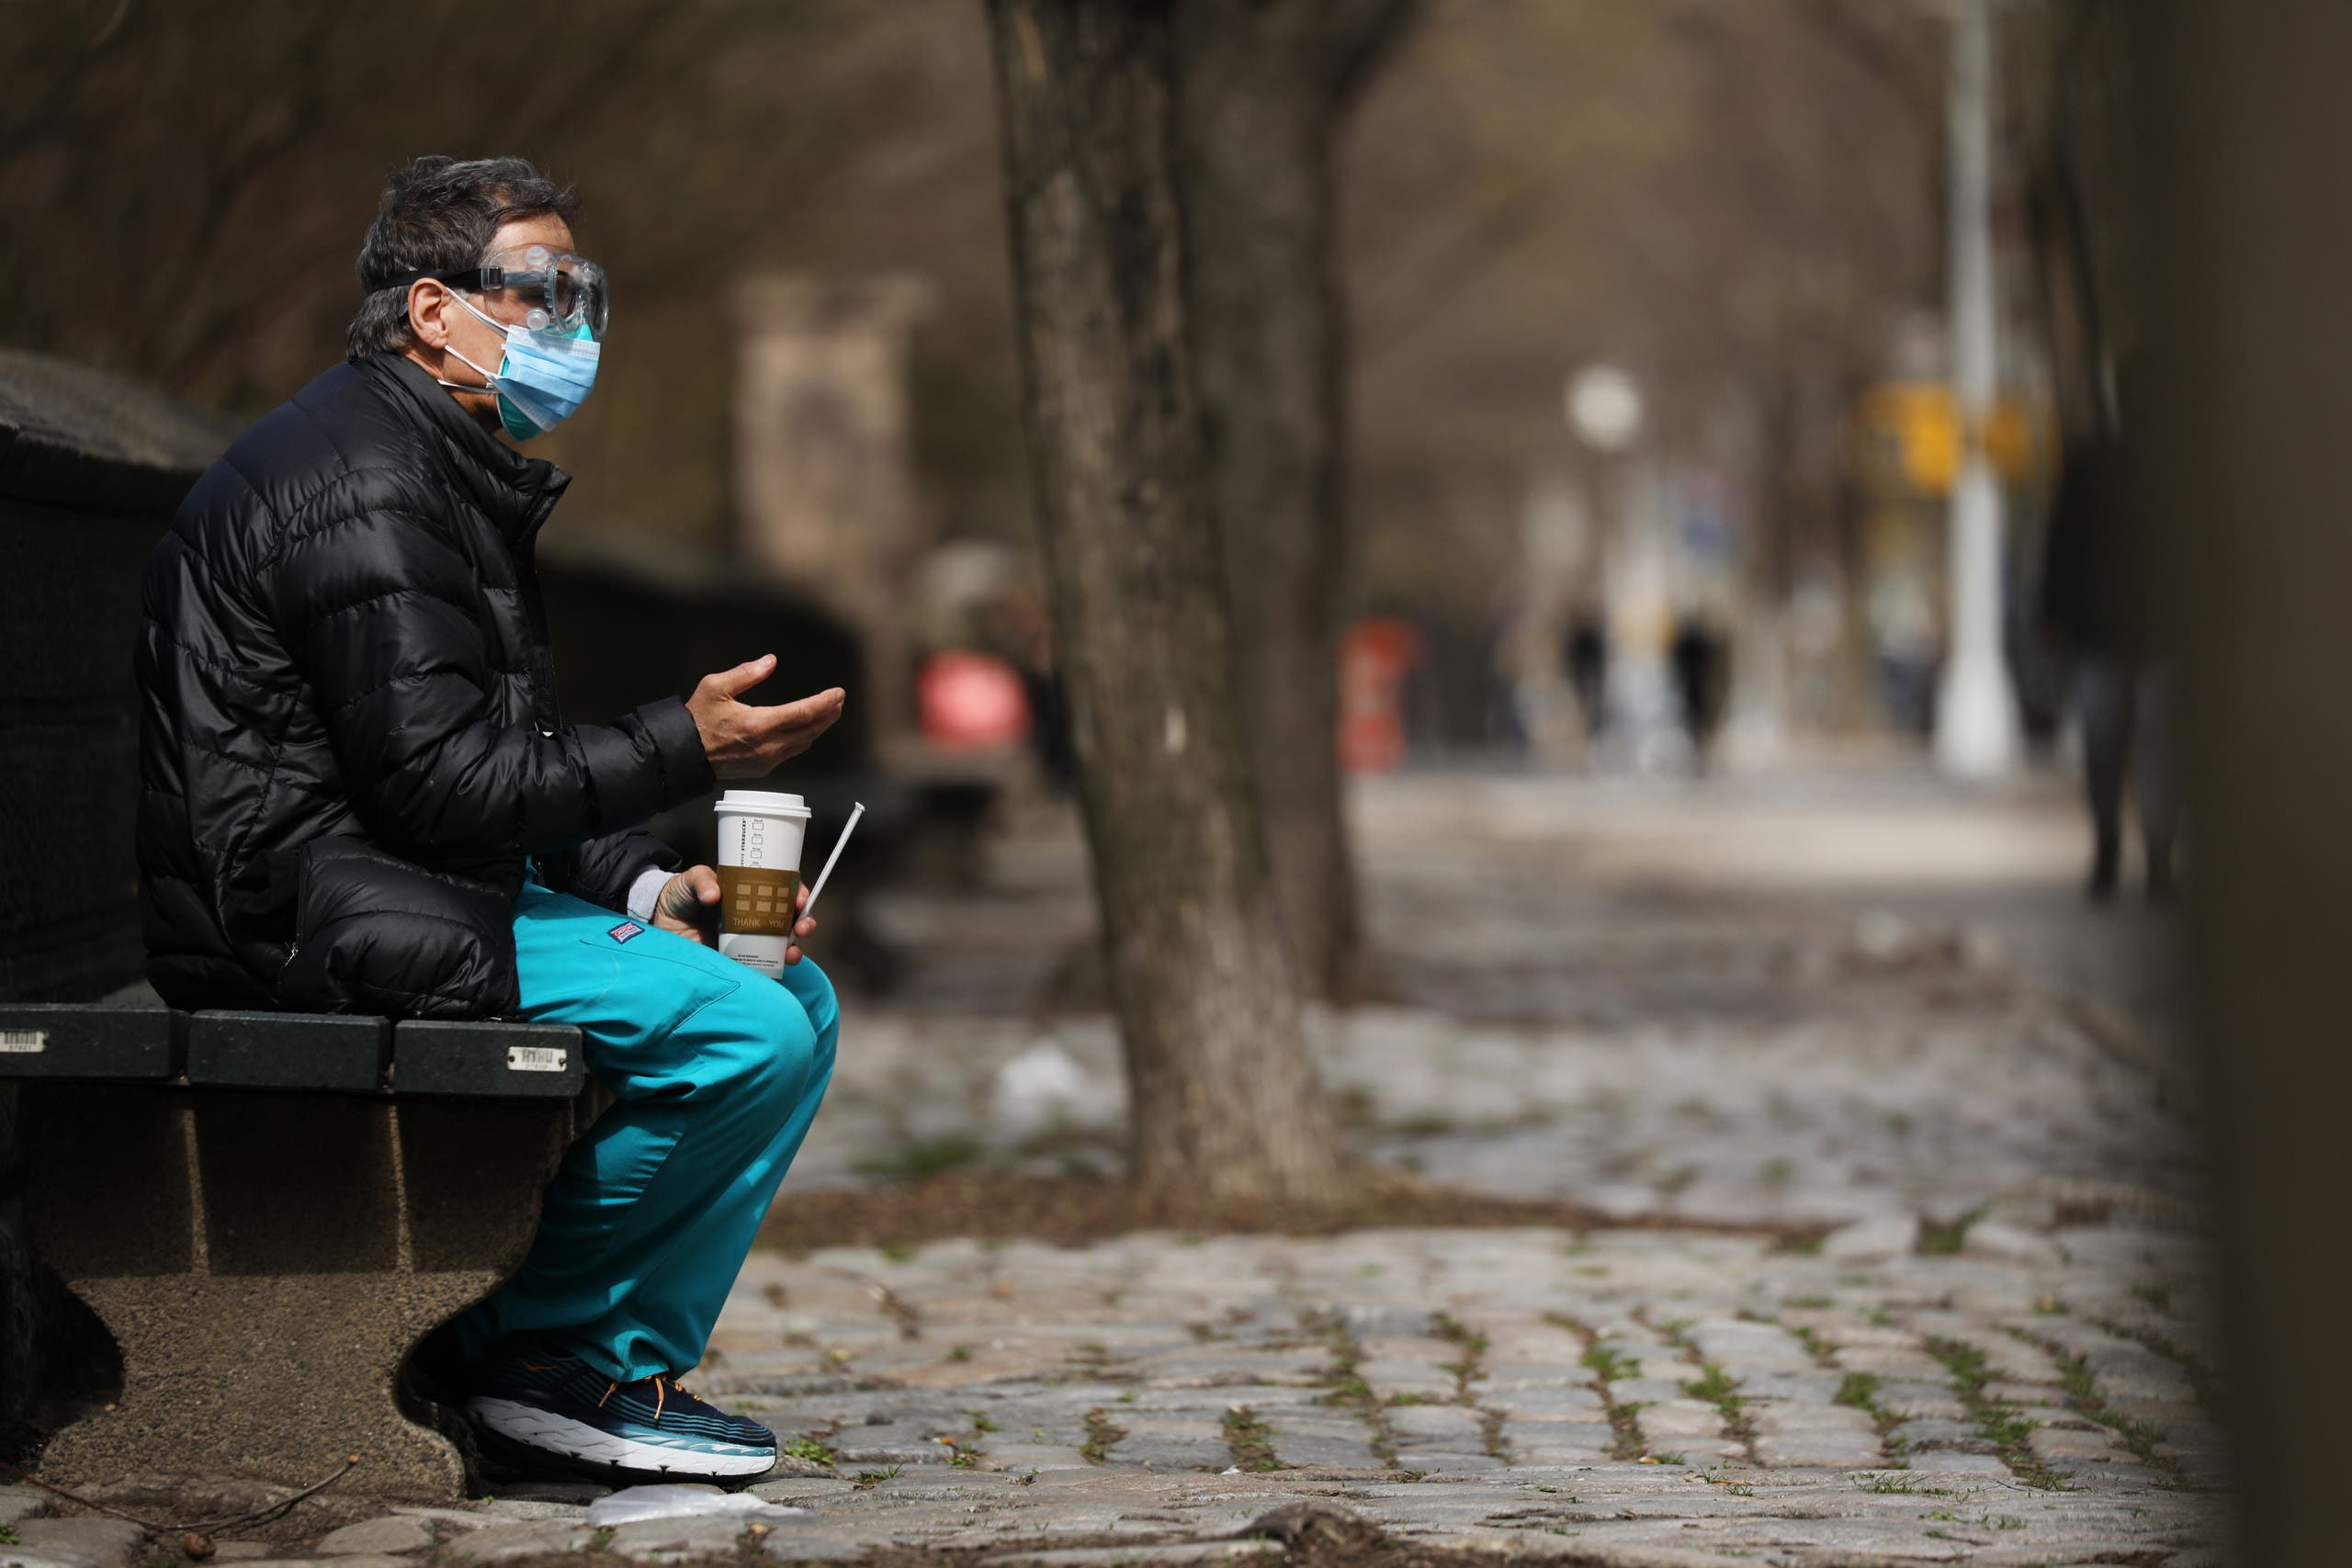 A medical worker takes a break outside of Mount Sinai Hospital amid the coronavirus pandemic on April 01, 2020 in New York City. (AFP)